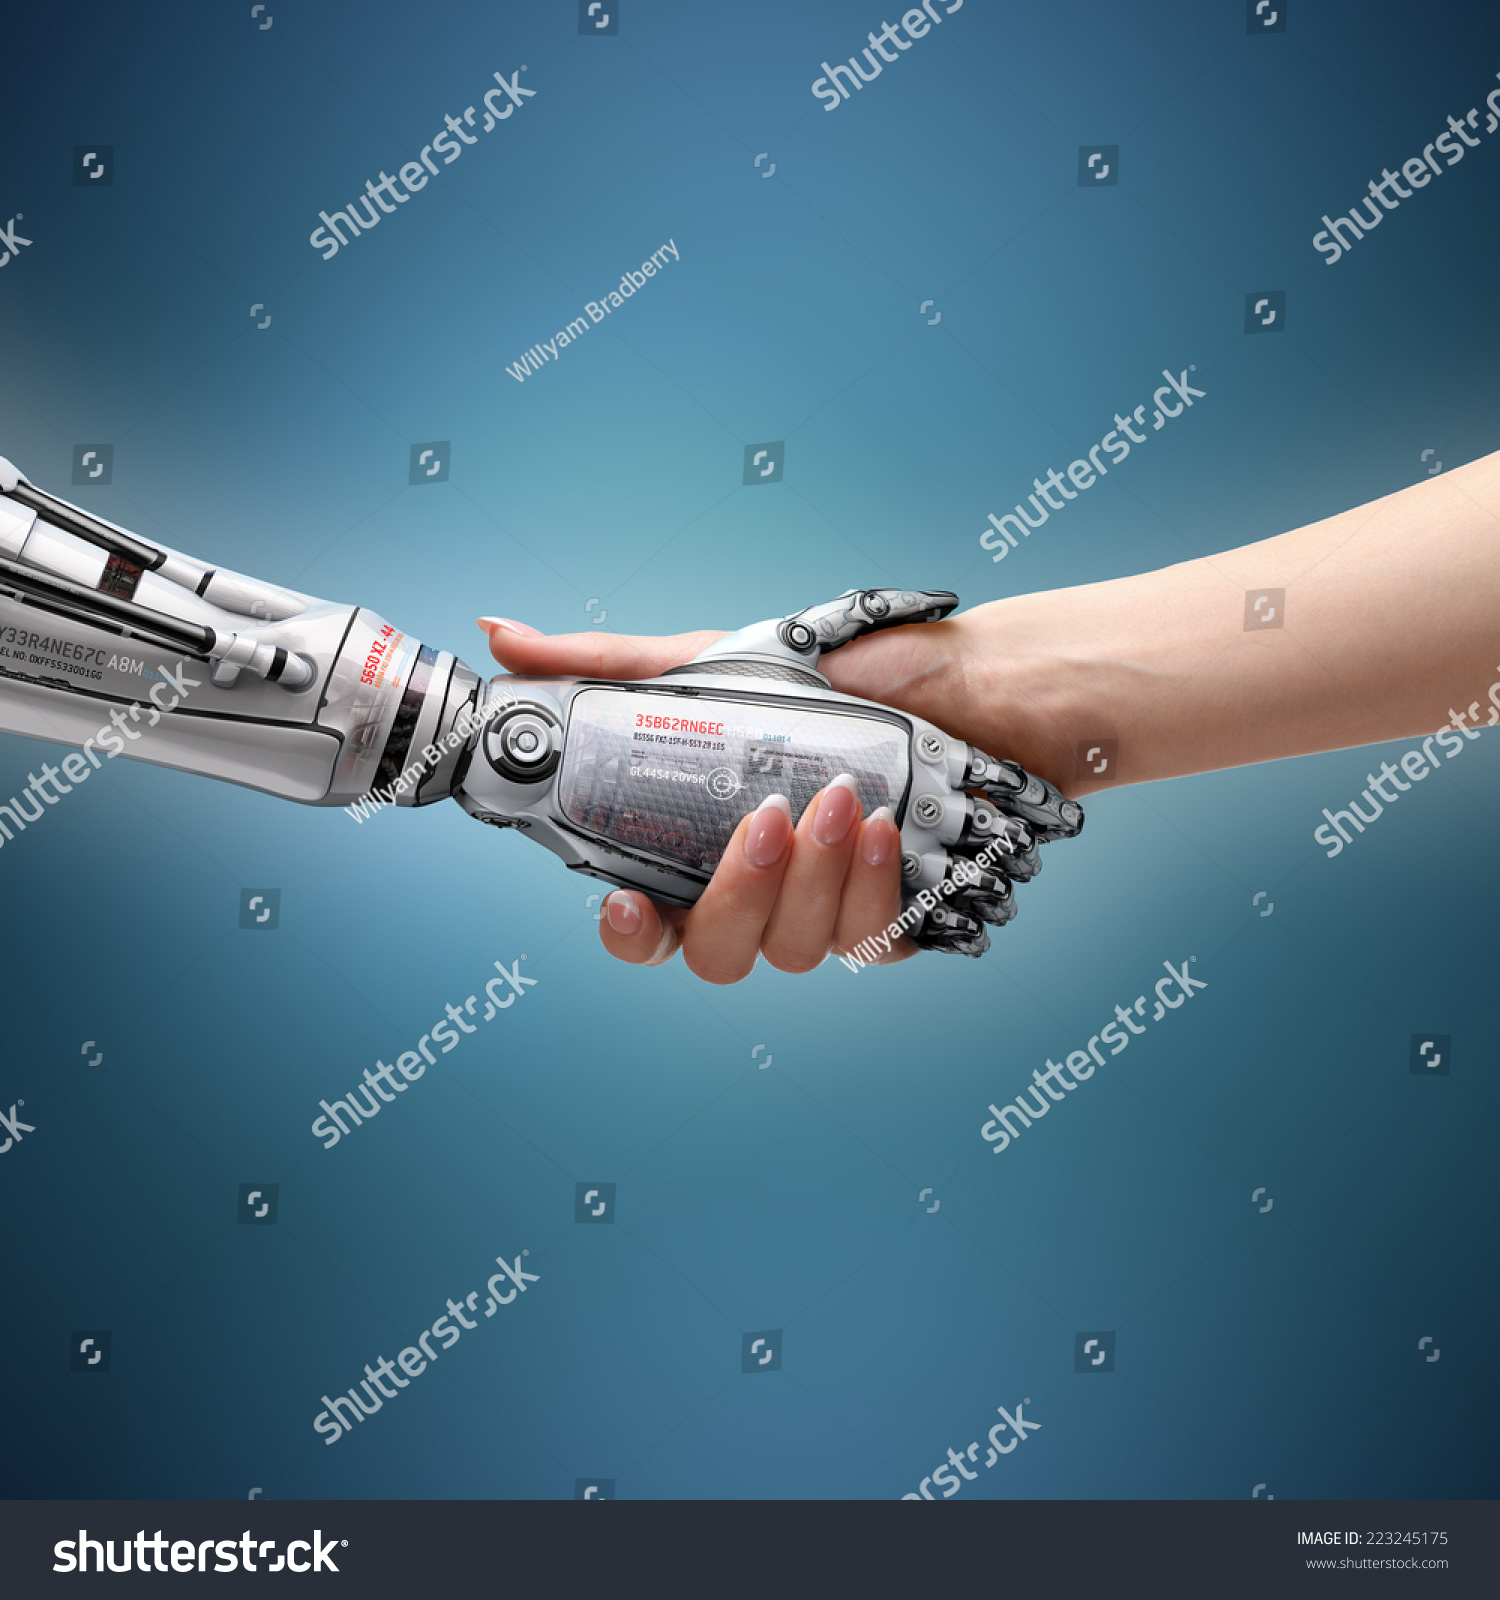 Image result for Artificial intelligence helping people